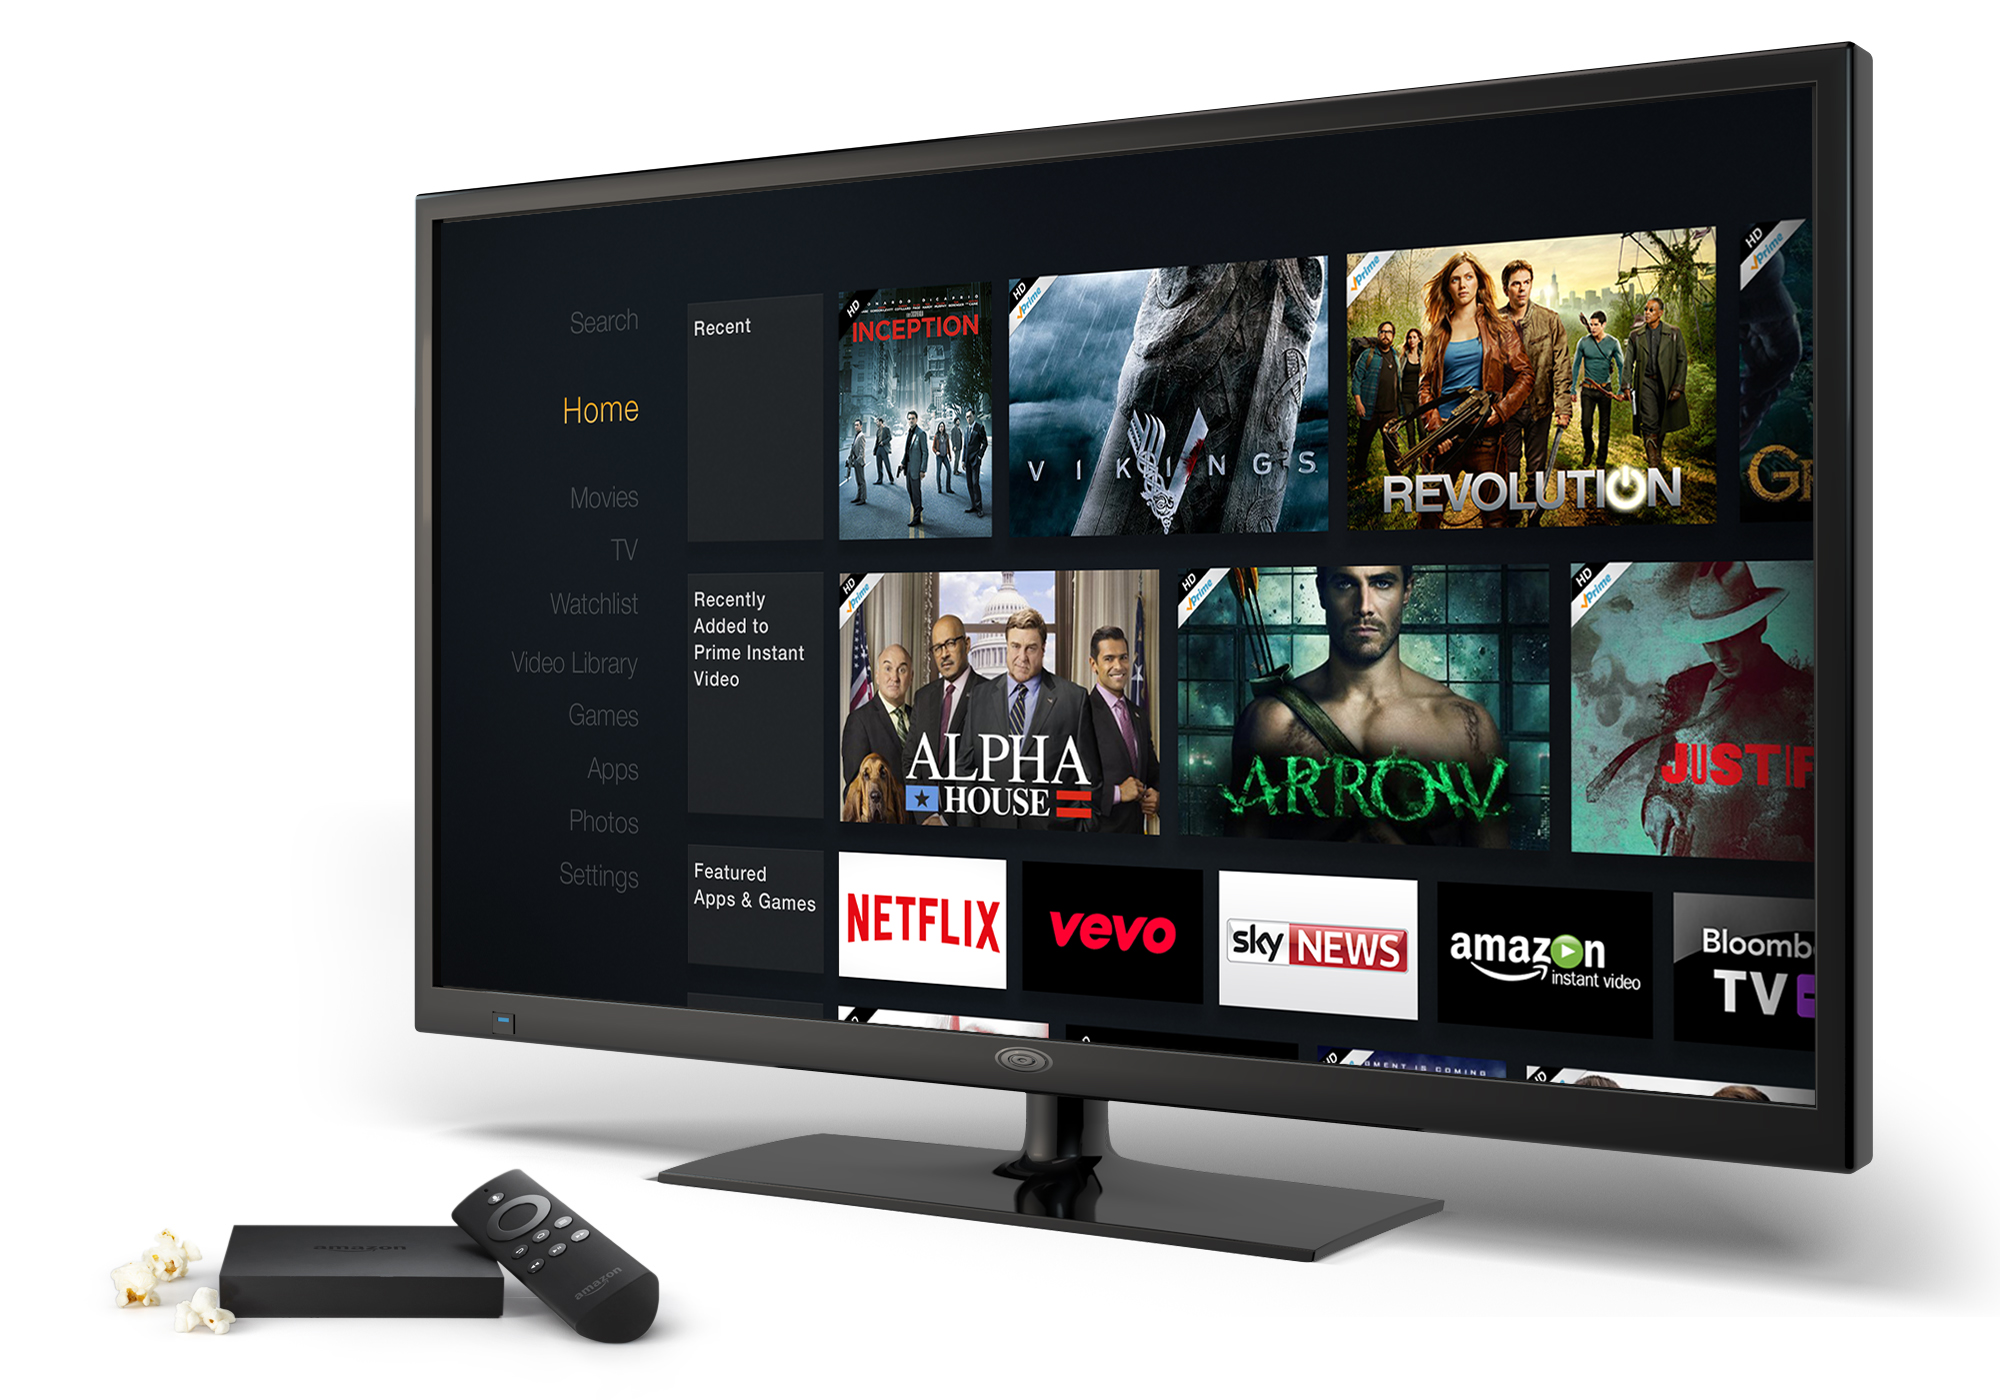 Majority Smart TVs feature an Ethernet port and built-in Wi-Fi support